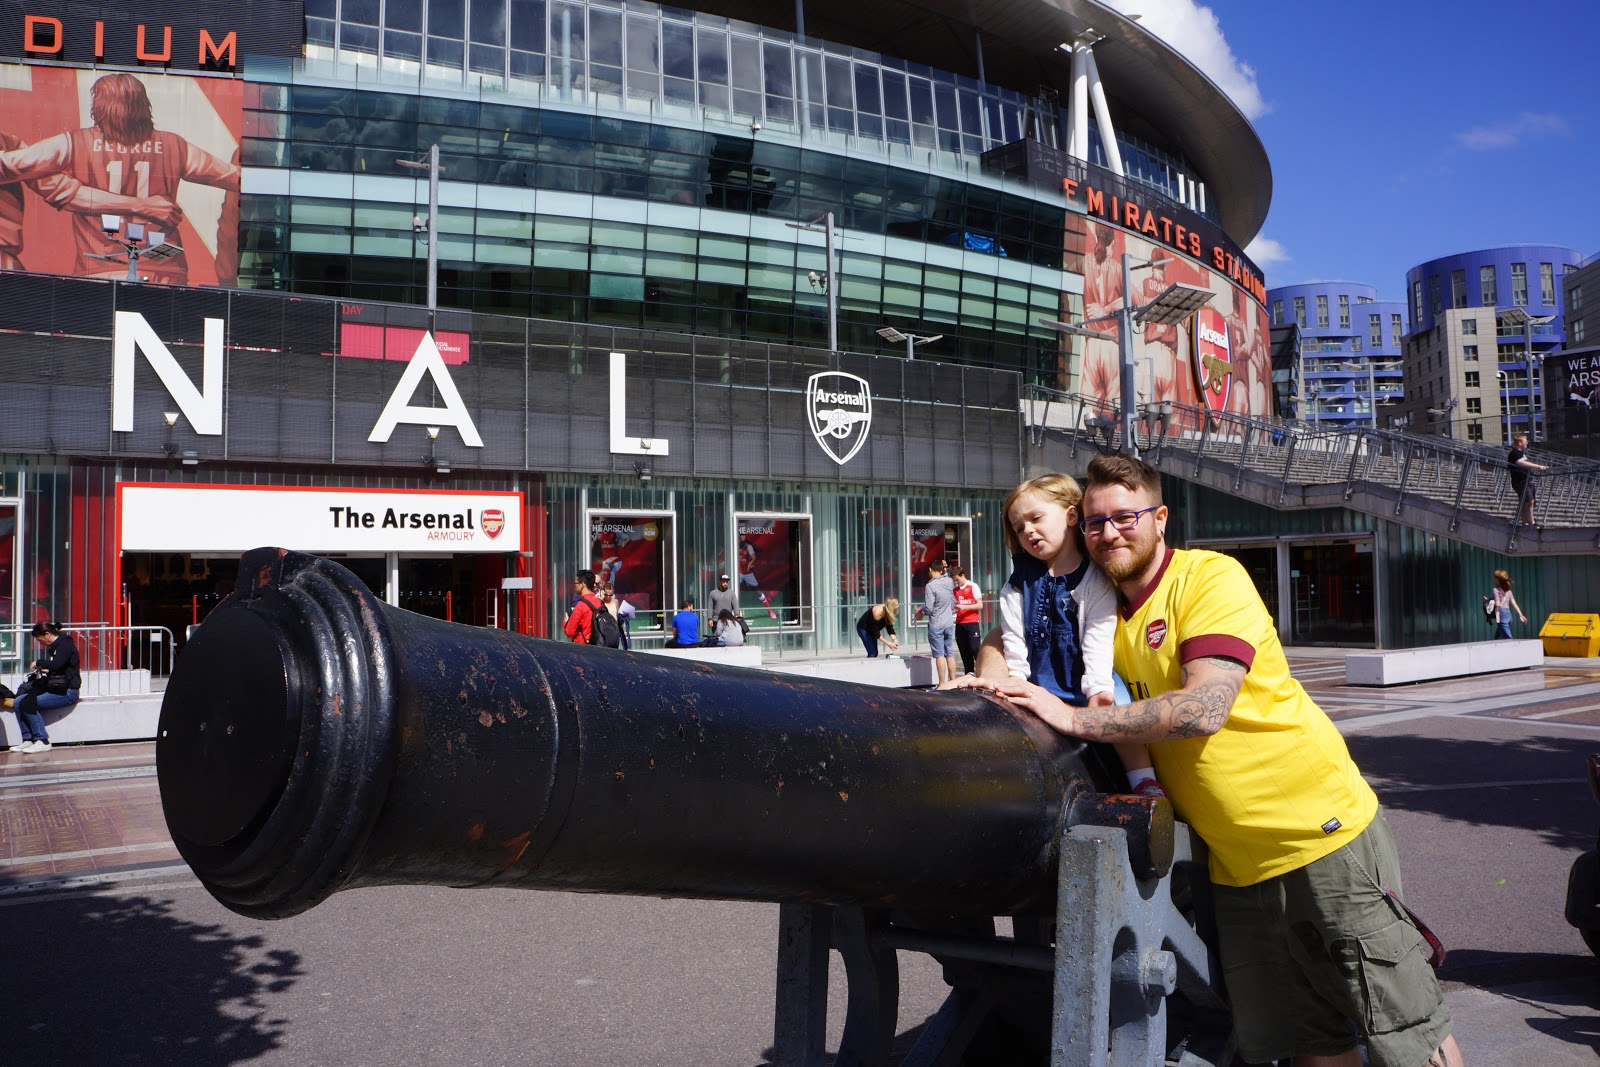 Gunners cannon outside Arsenal Stadium